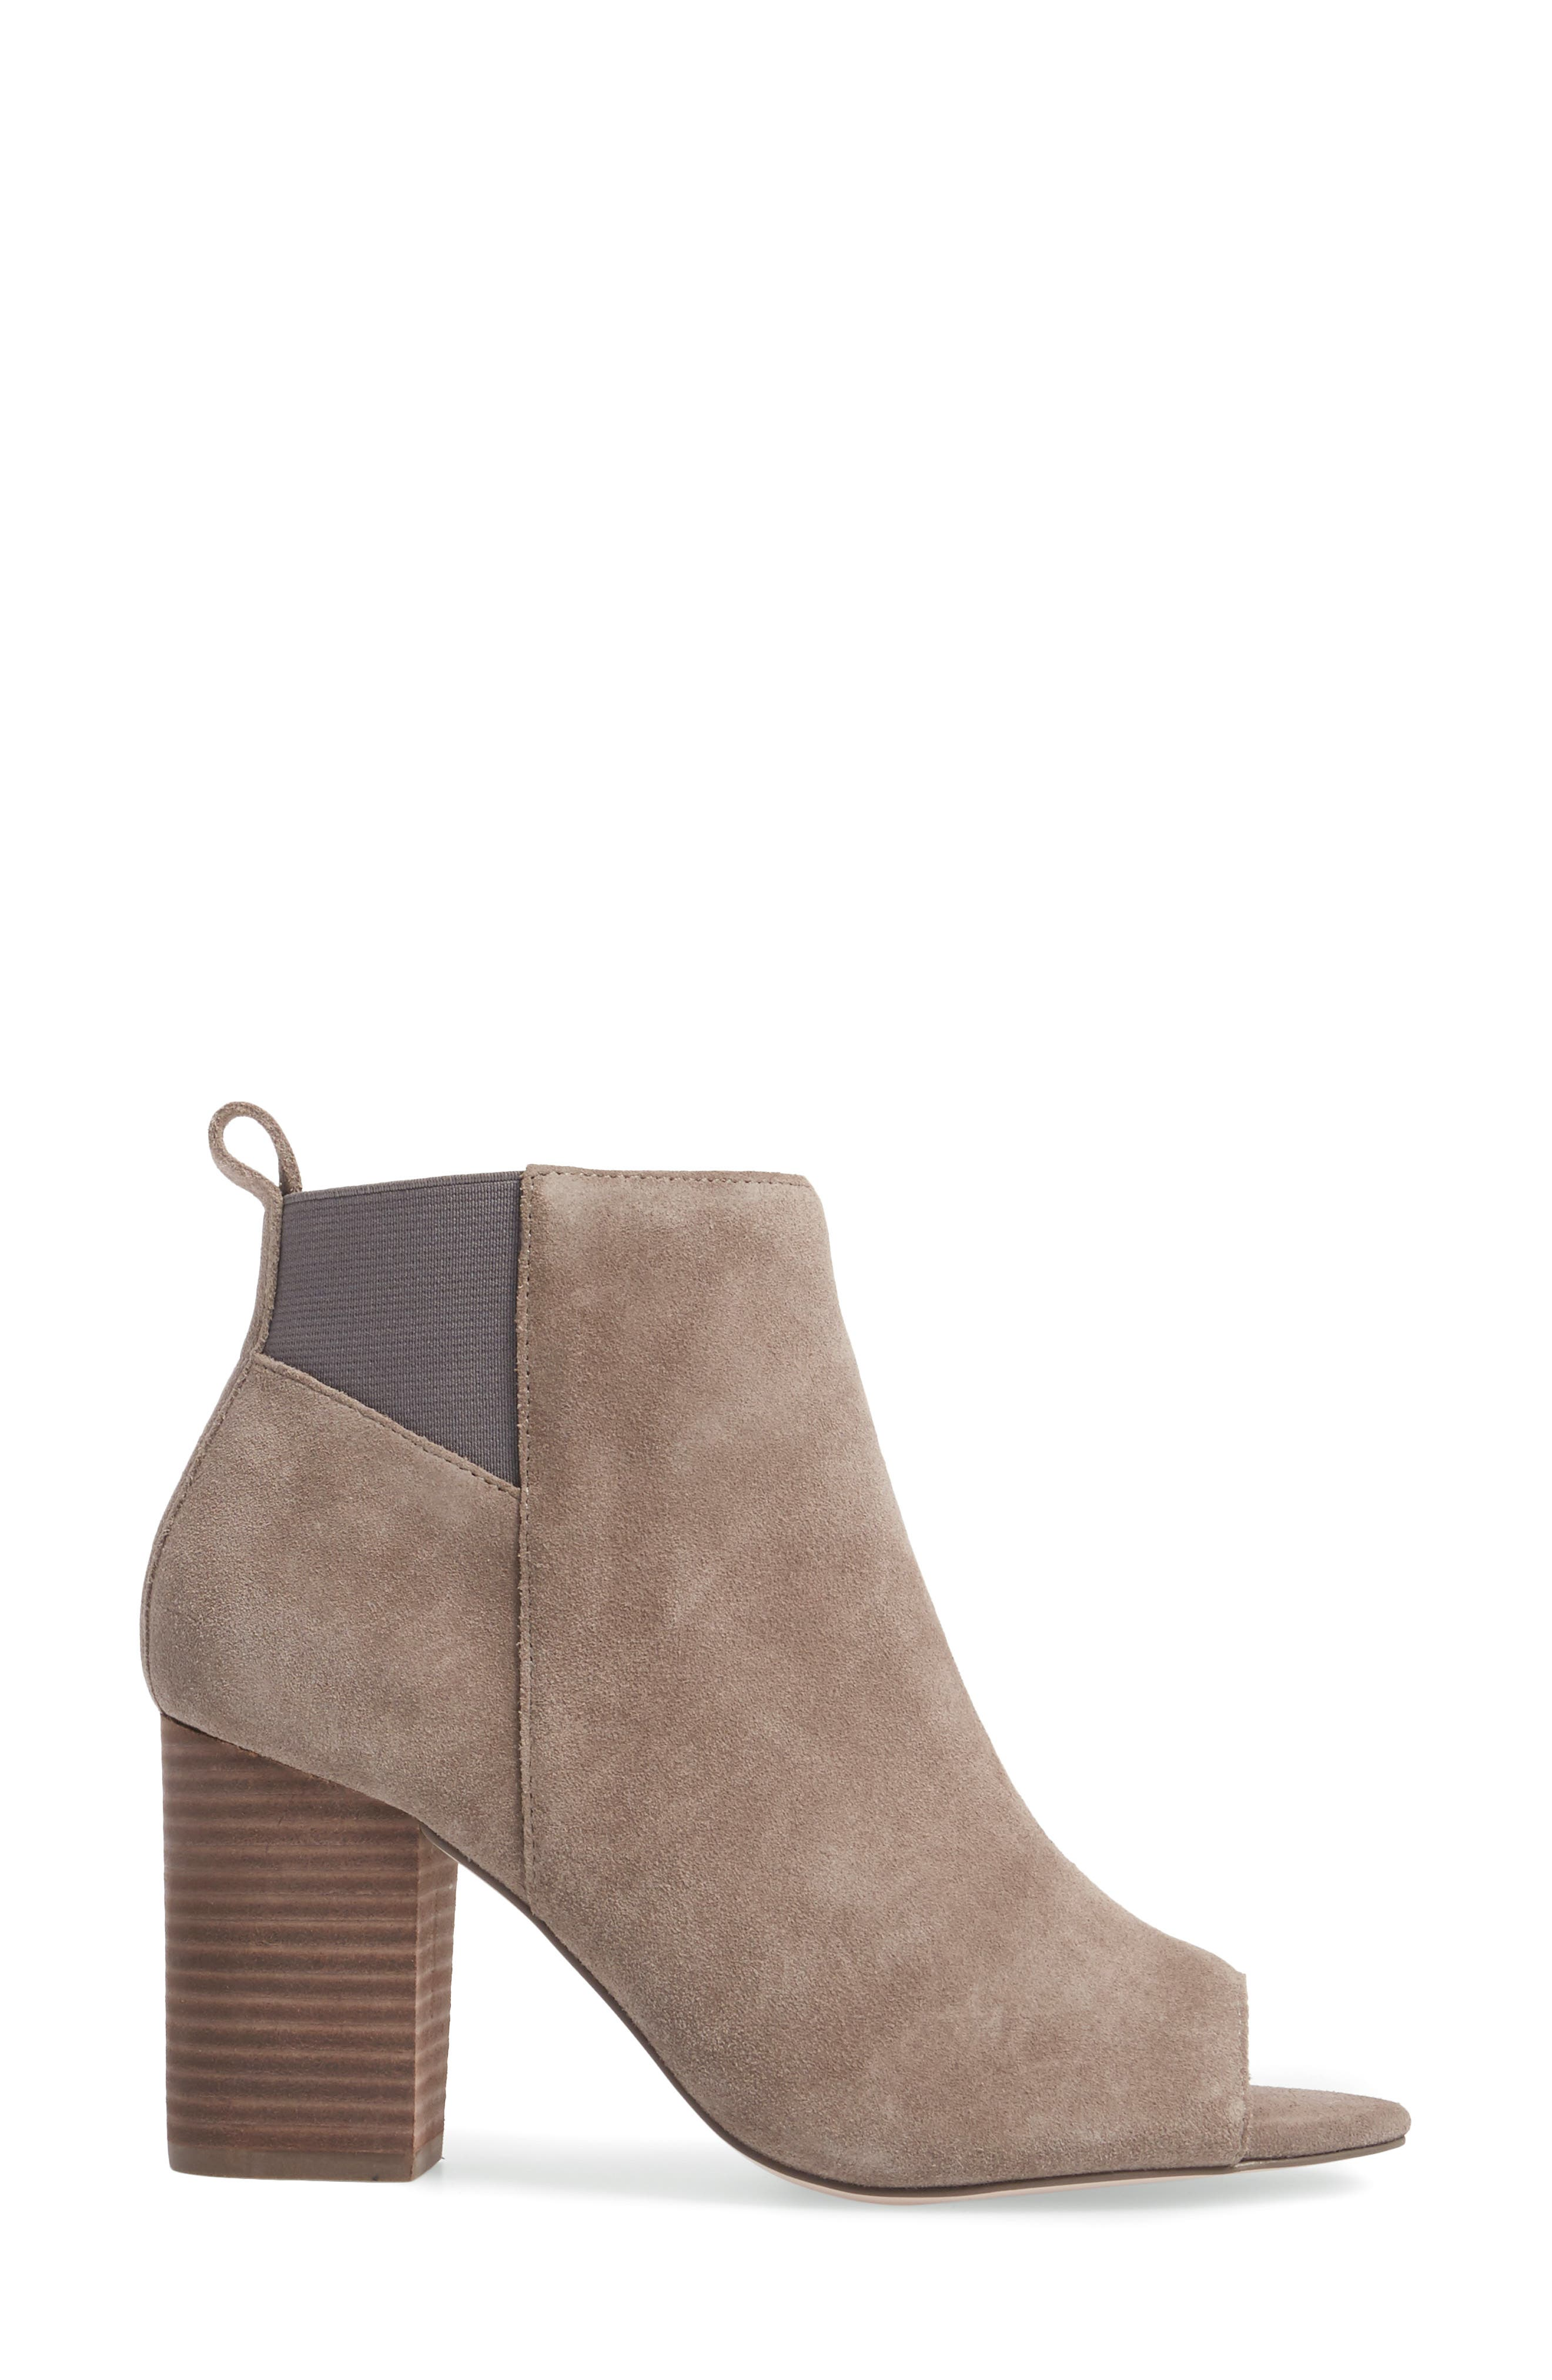 Vita Peep Toe Bootie,                             Alternate thumbnail 3, color,                             020